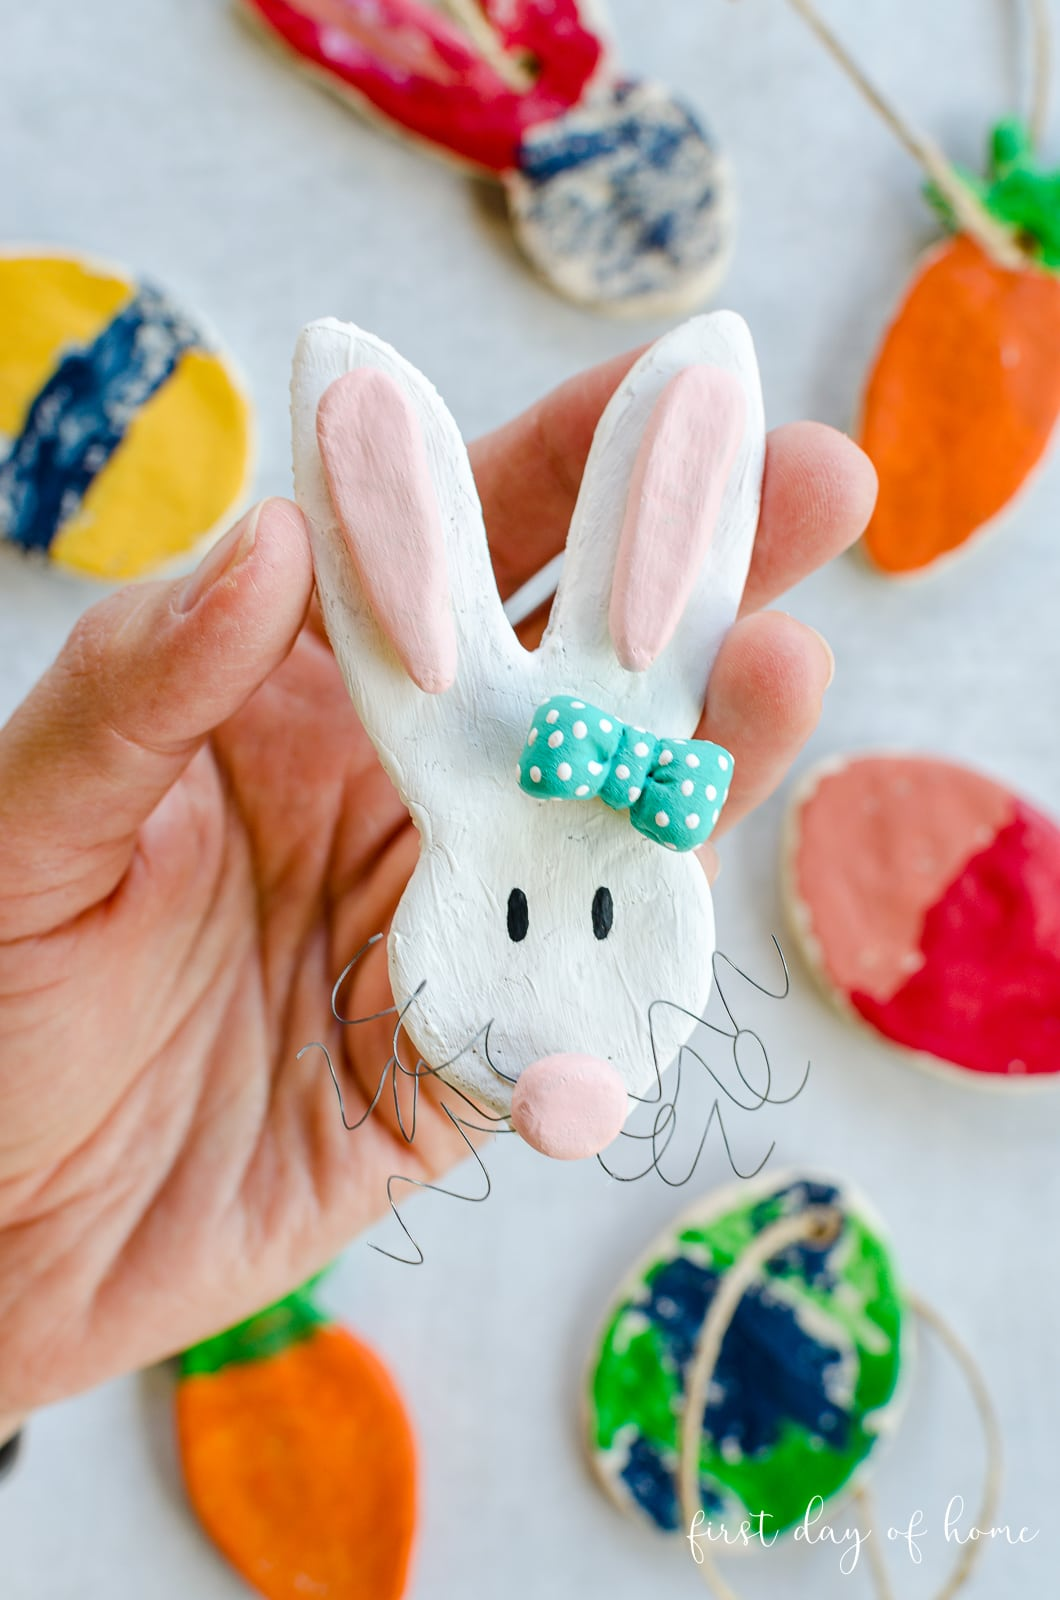 White bunny with turquoise bow made using salt dough recipe